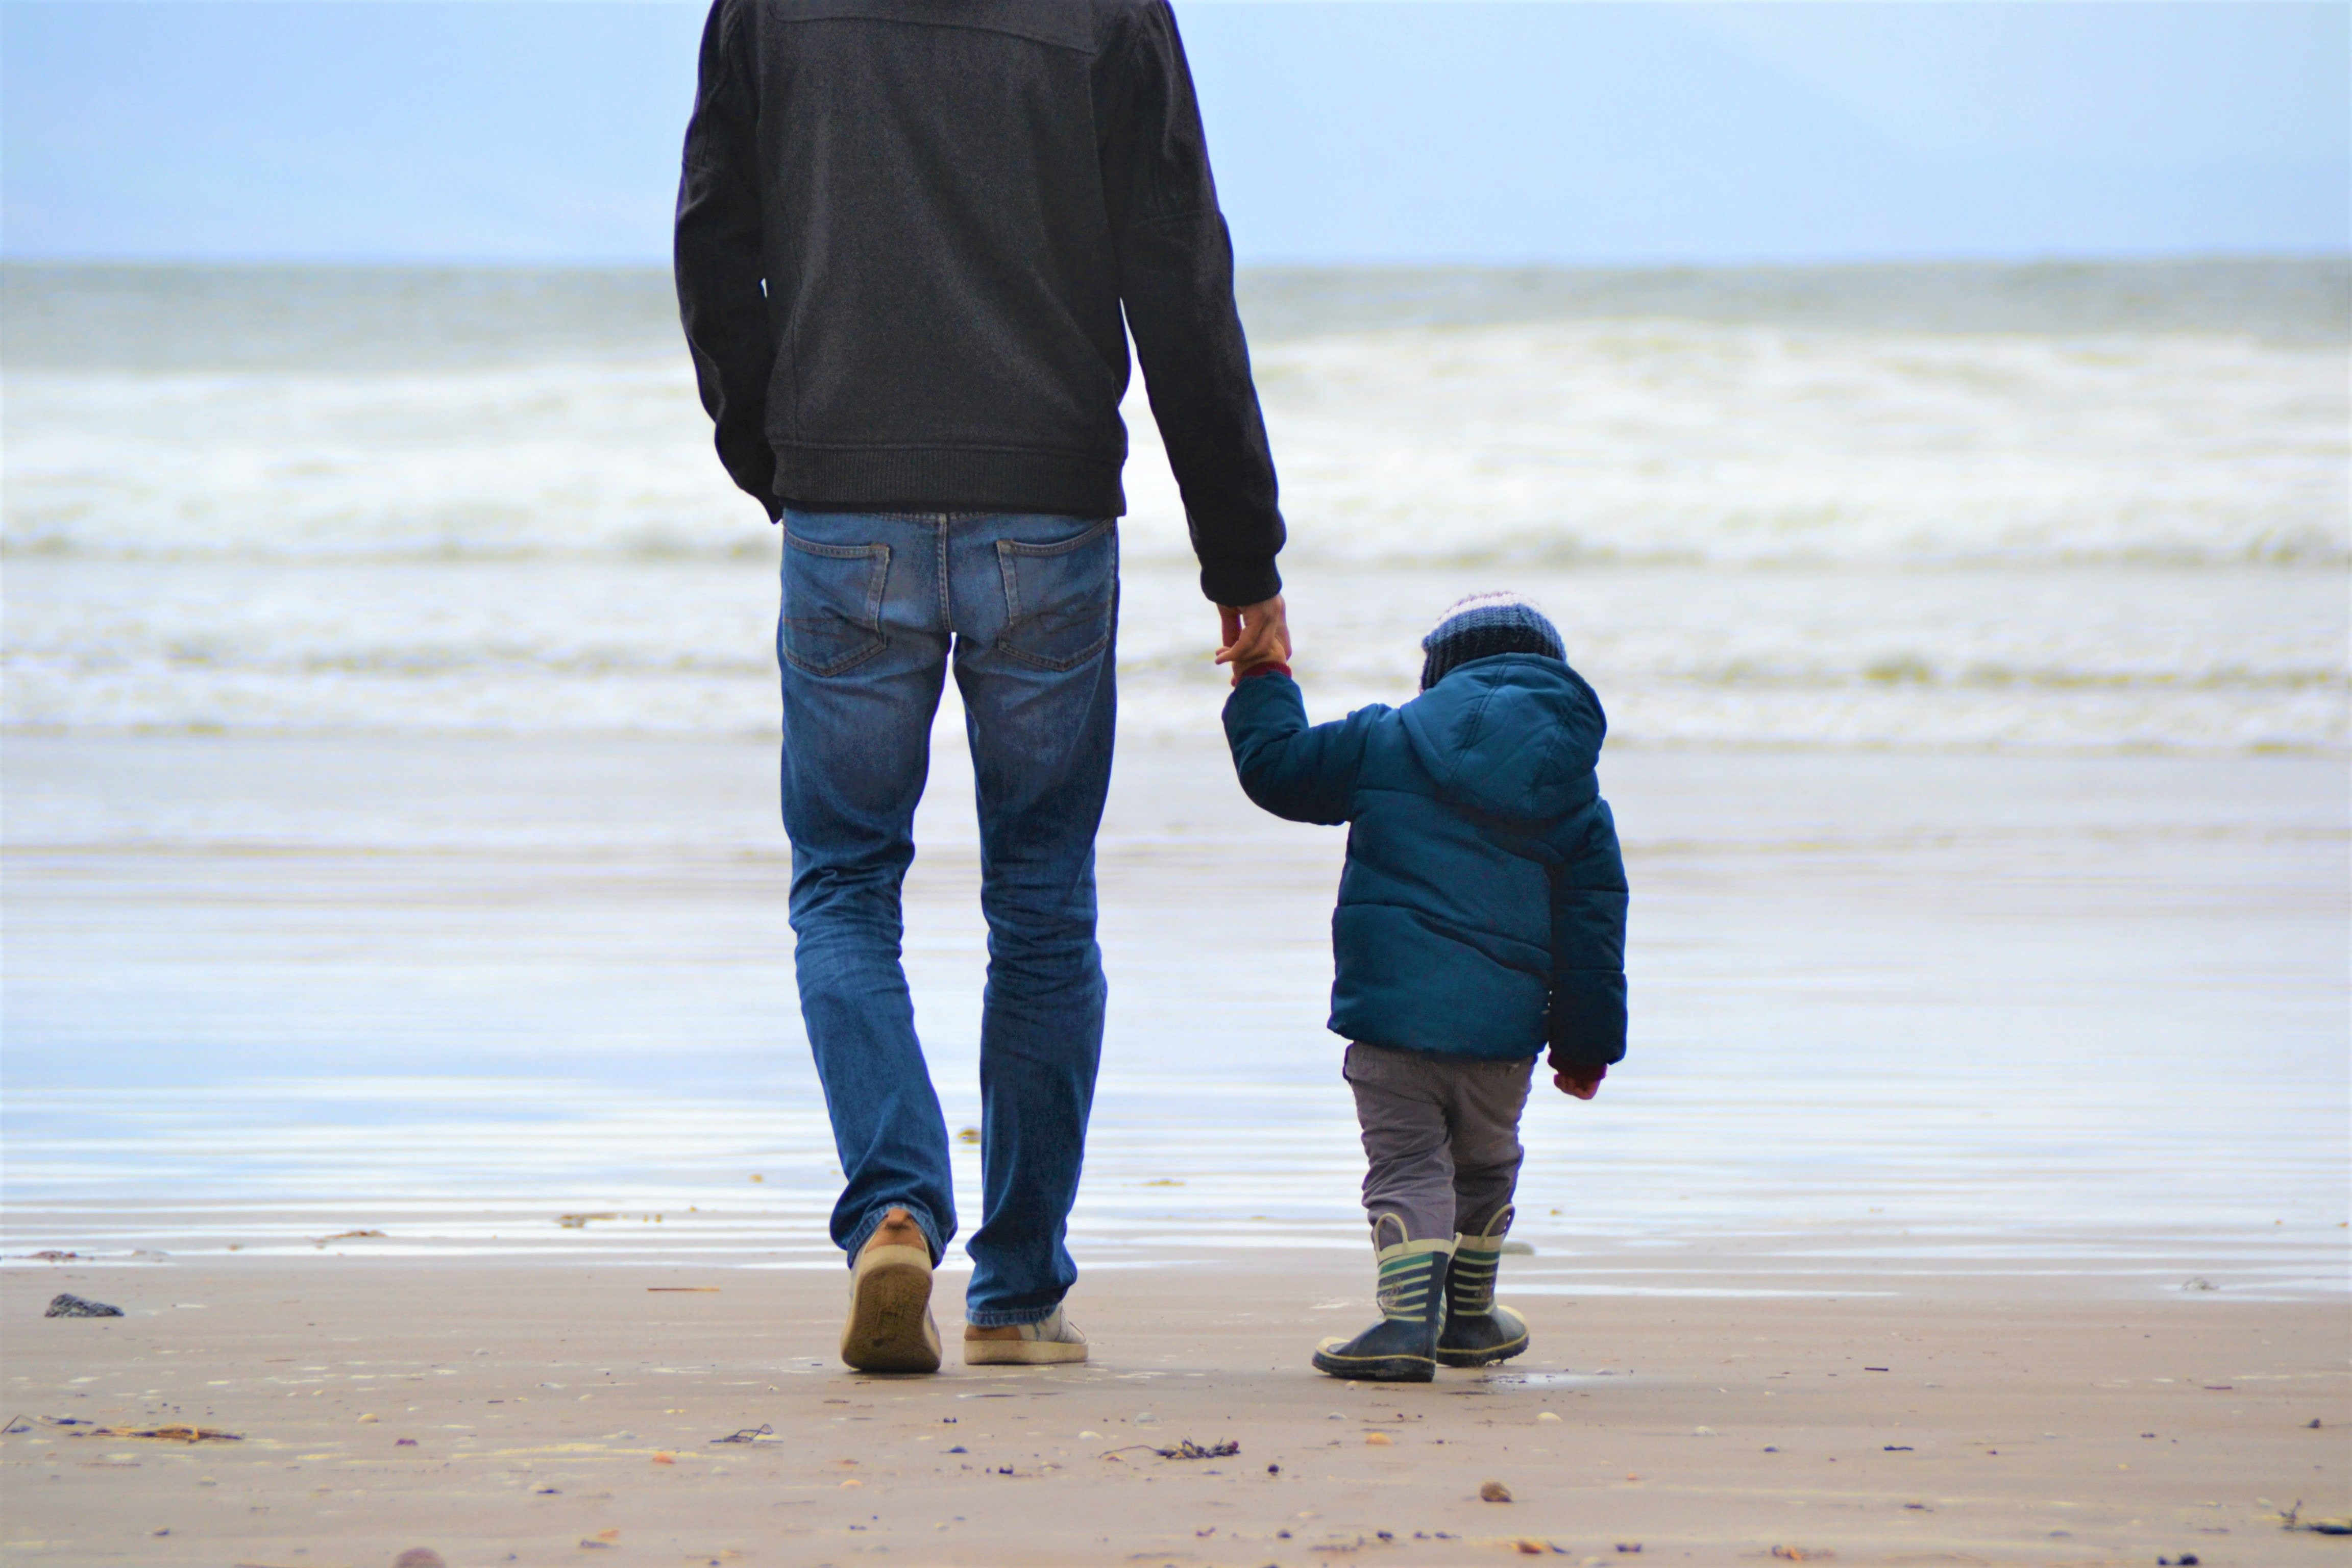 A father and son walking hand in hand | Source: Unsplash.com